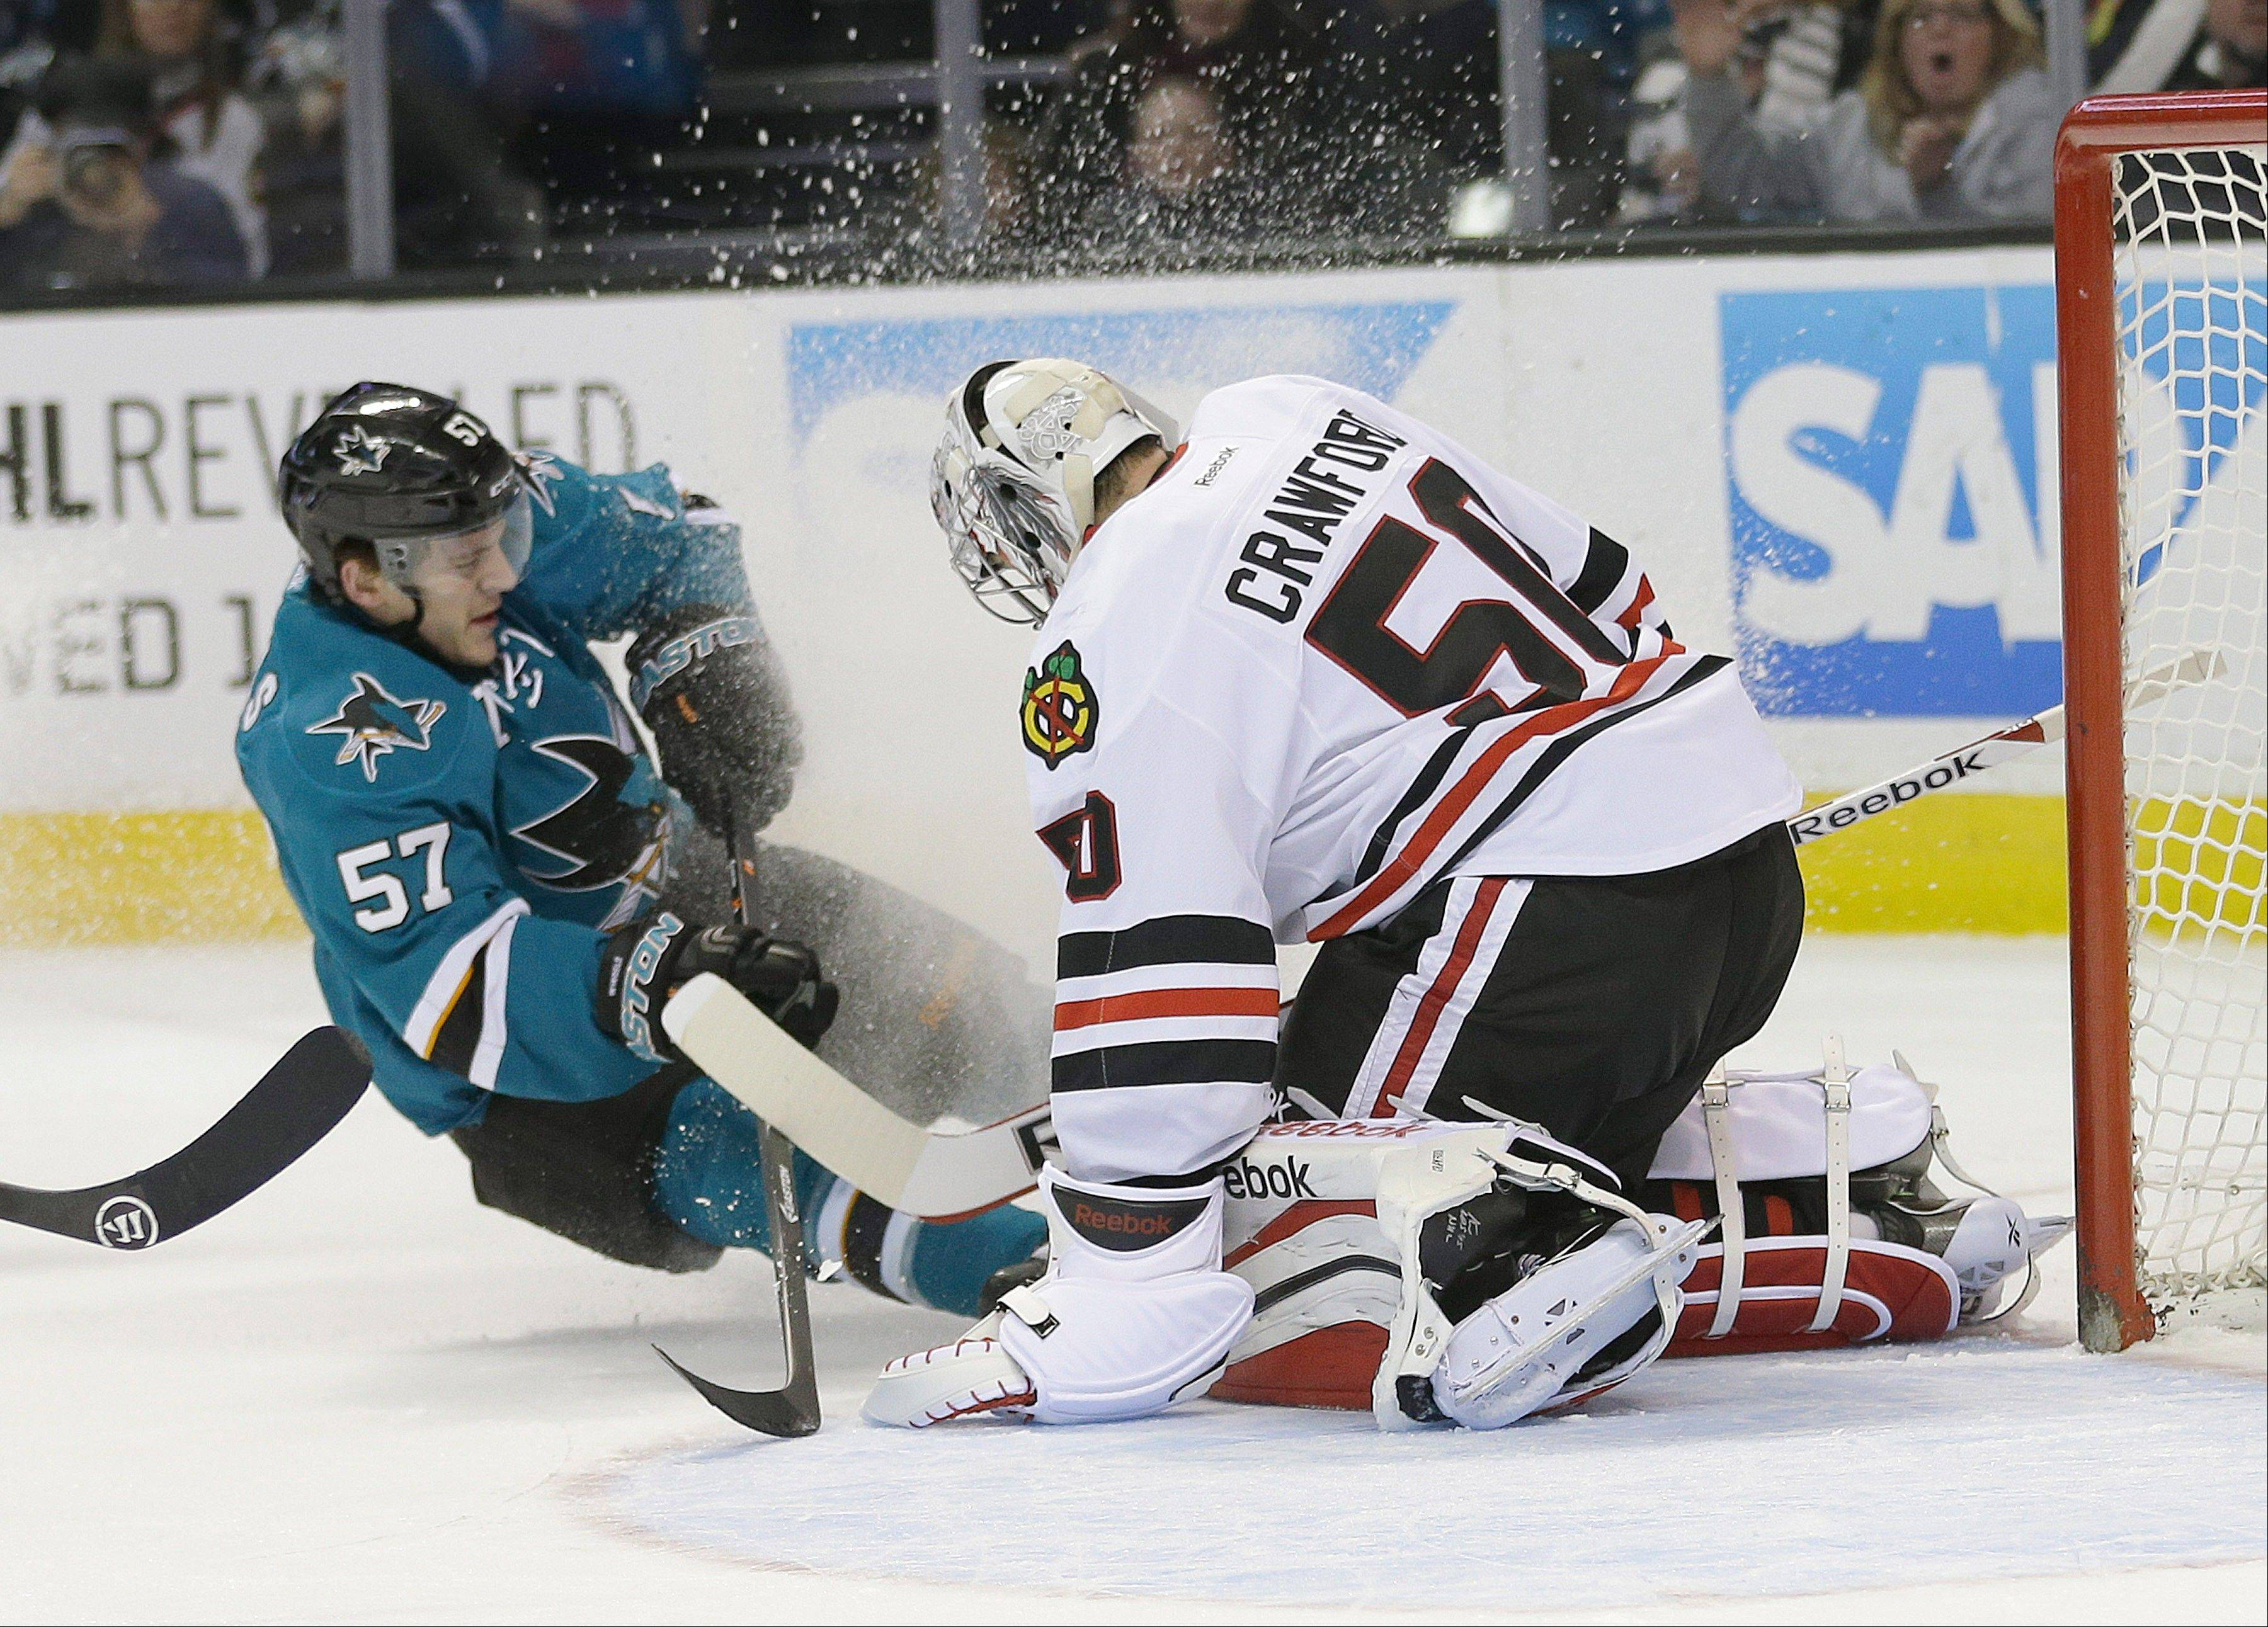 Hawks goalie Corey Crawford blocks a shot from the Sharks' Tommy Wingels during the first period Saturday in San Jose.